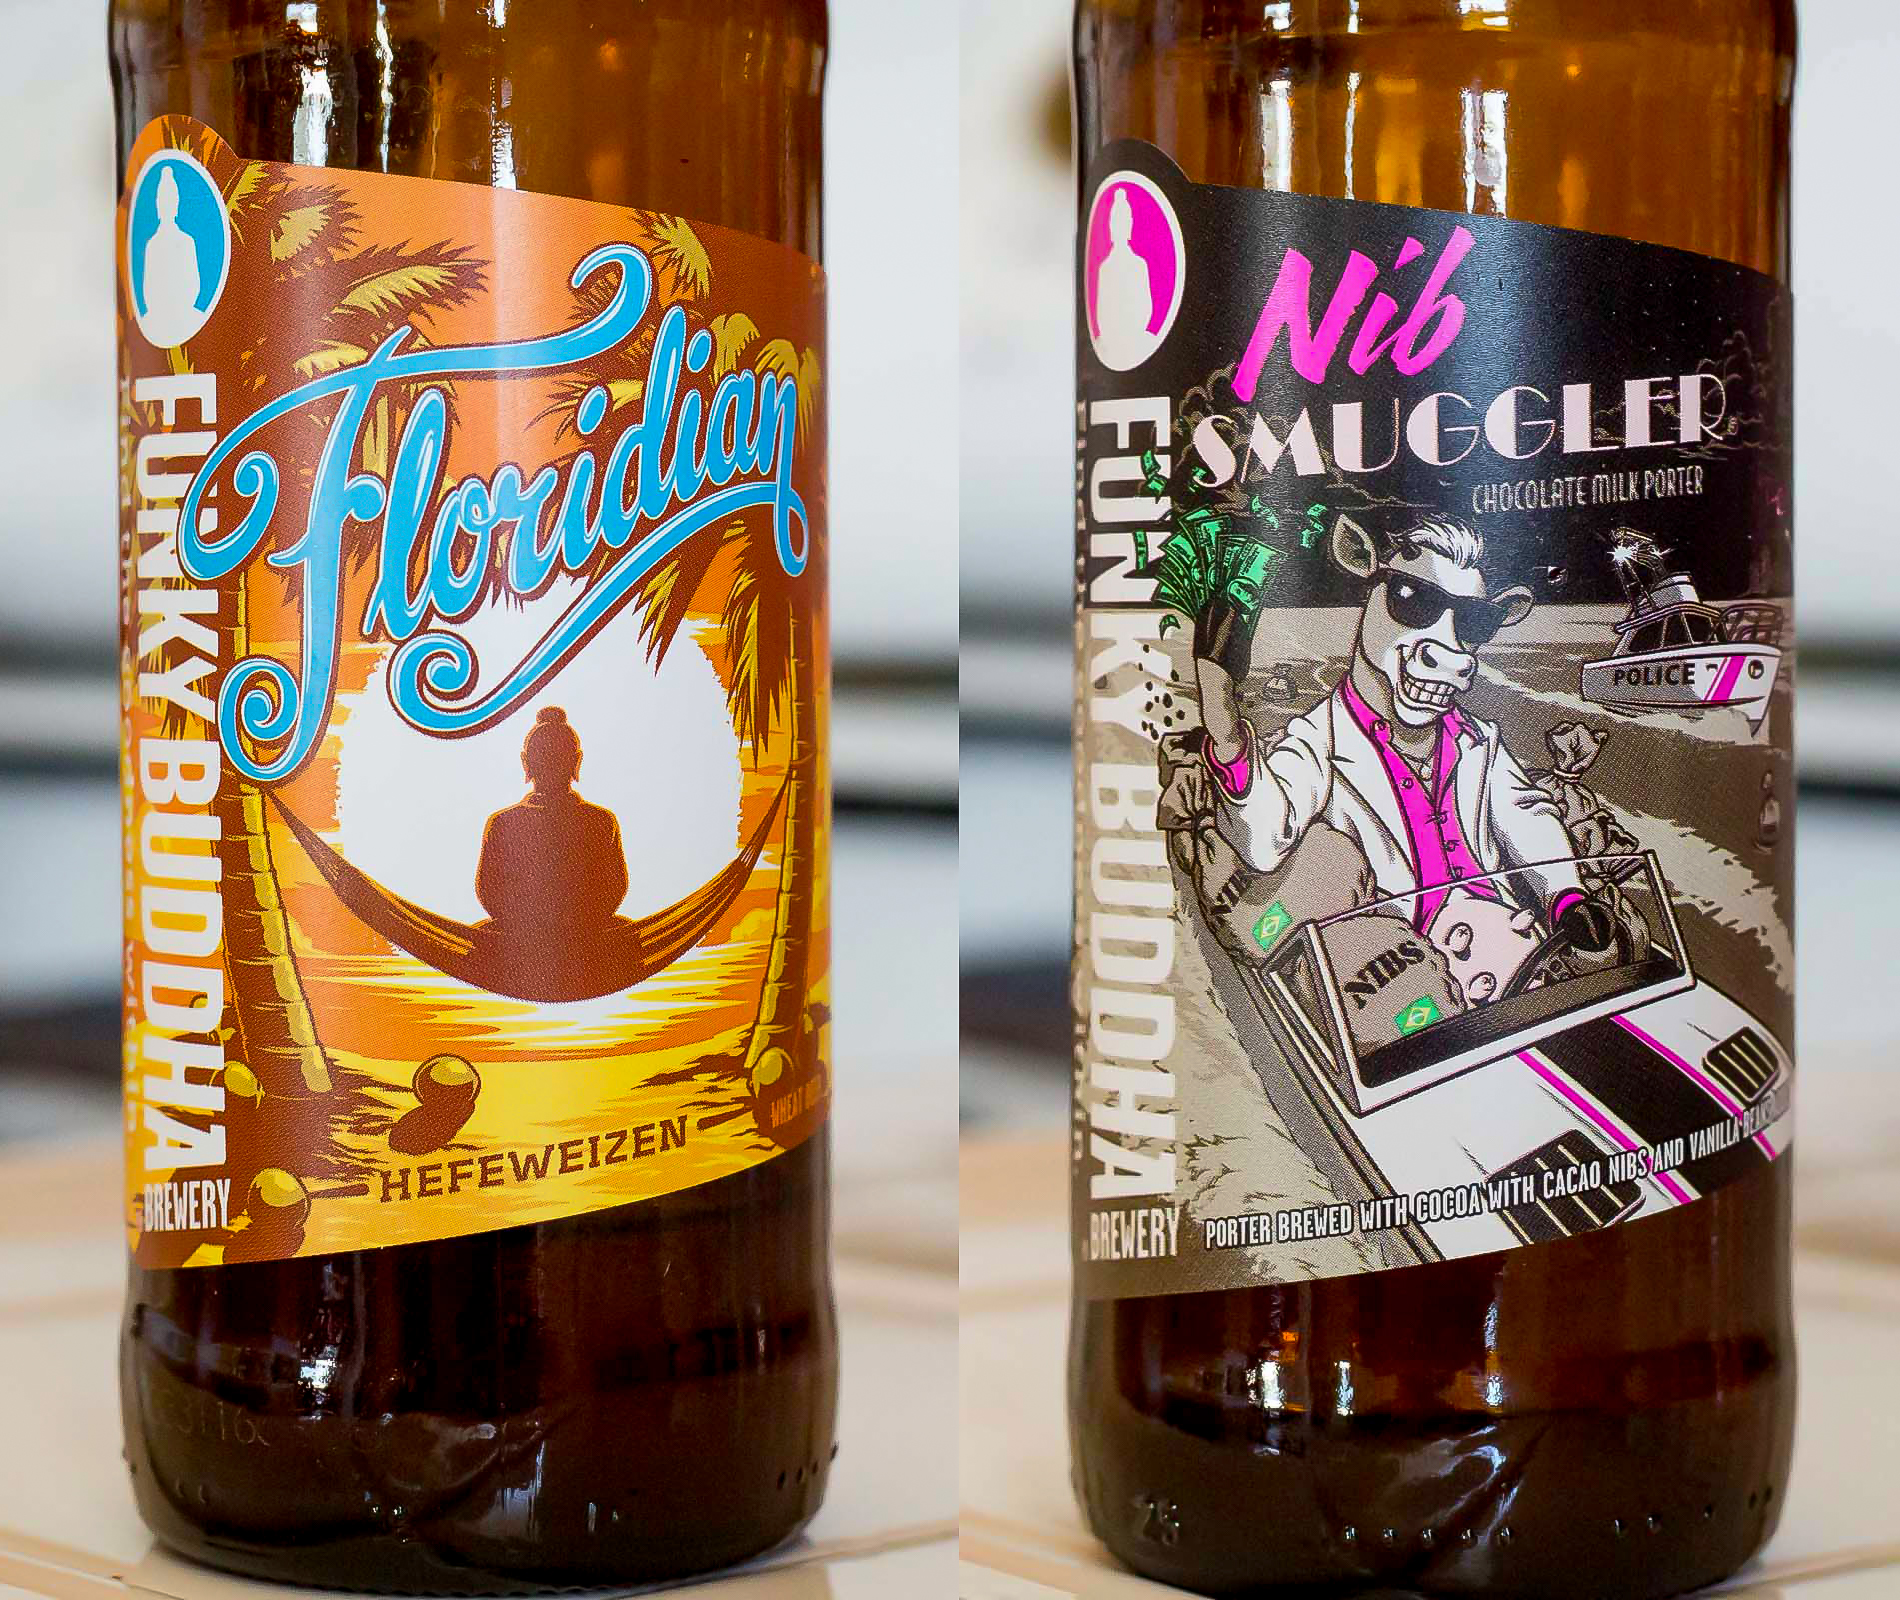 More Funky Buddha Beers!